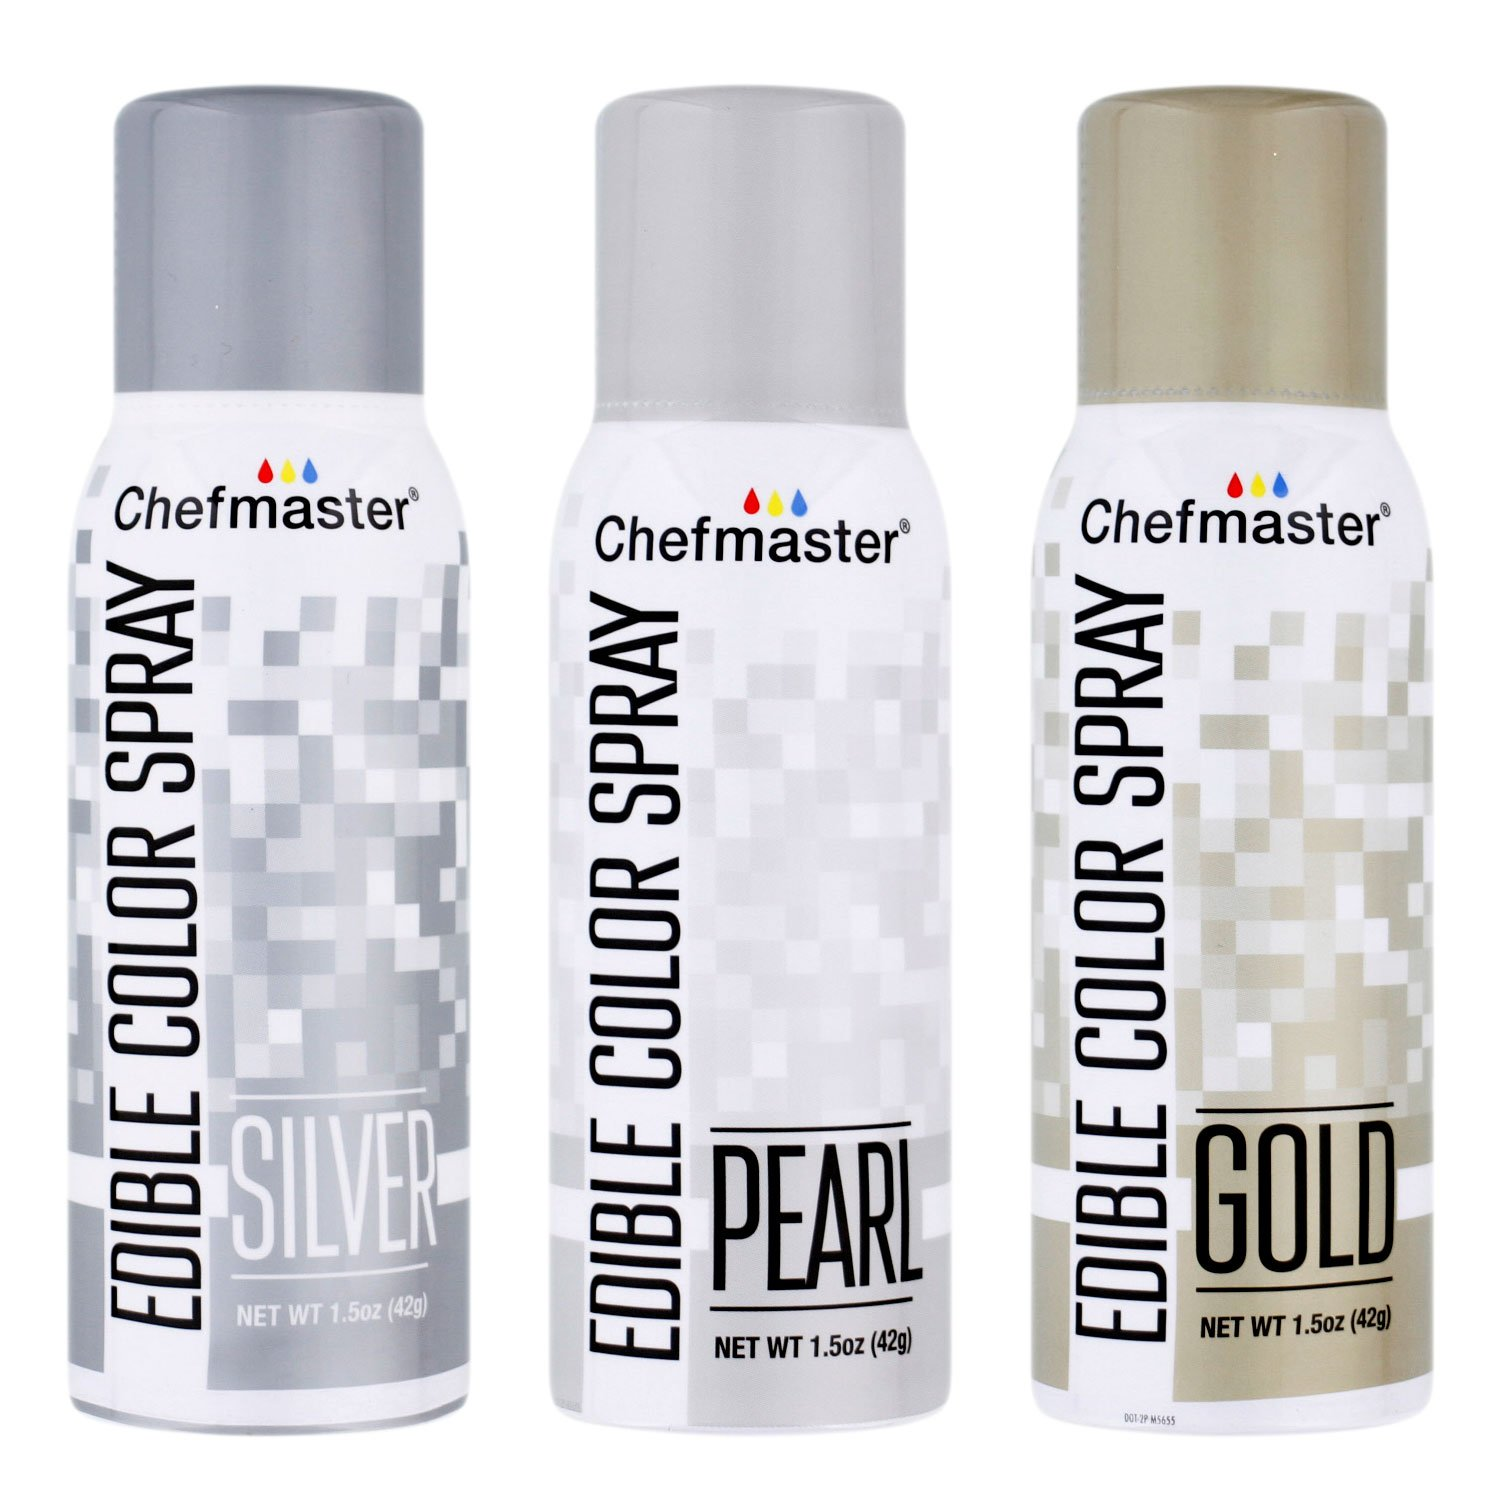 U.S. Cake Supply by Chefmaster Edible Spray Cake Decorating Color Metallic Theme 3-Pack - 1.5 ounce Cans (Gold, Silver, Pearl) by U.S. Cake Supply